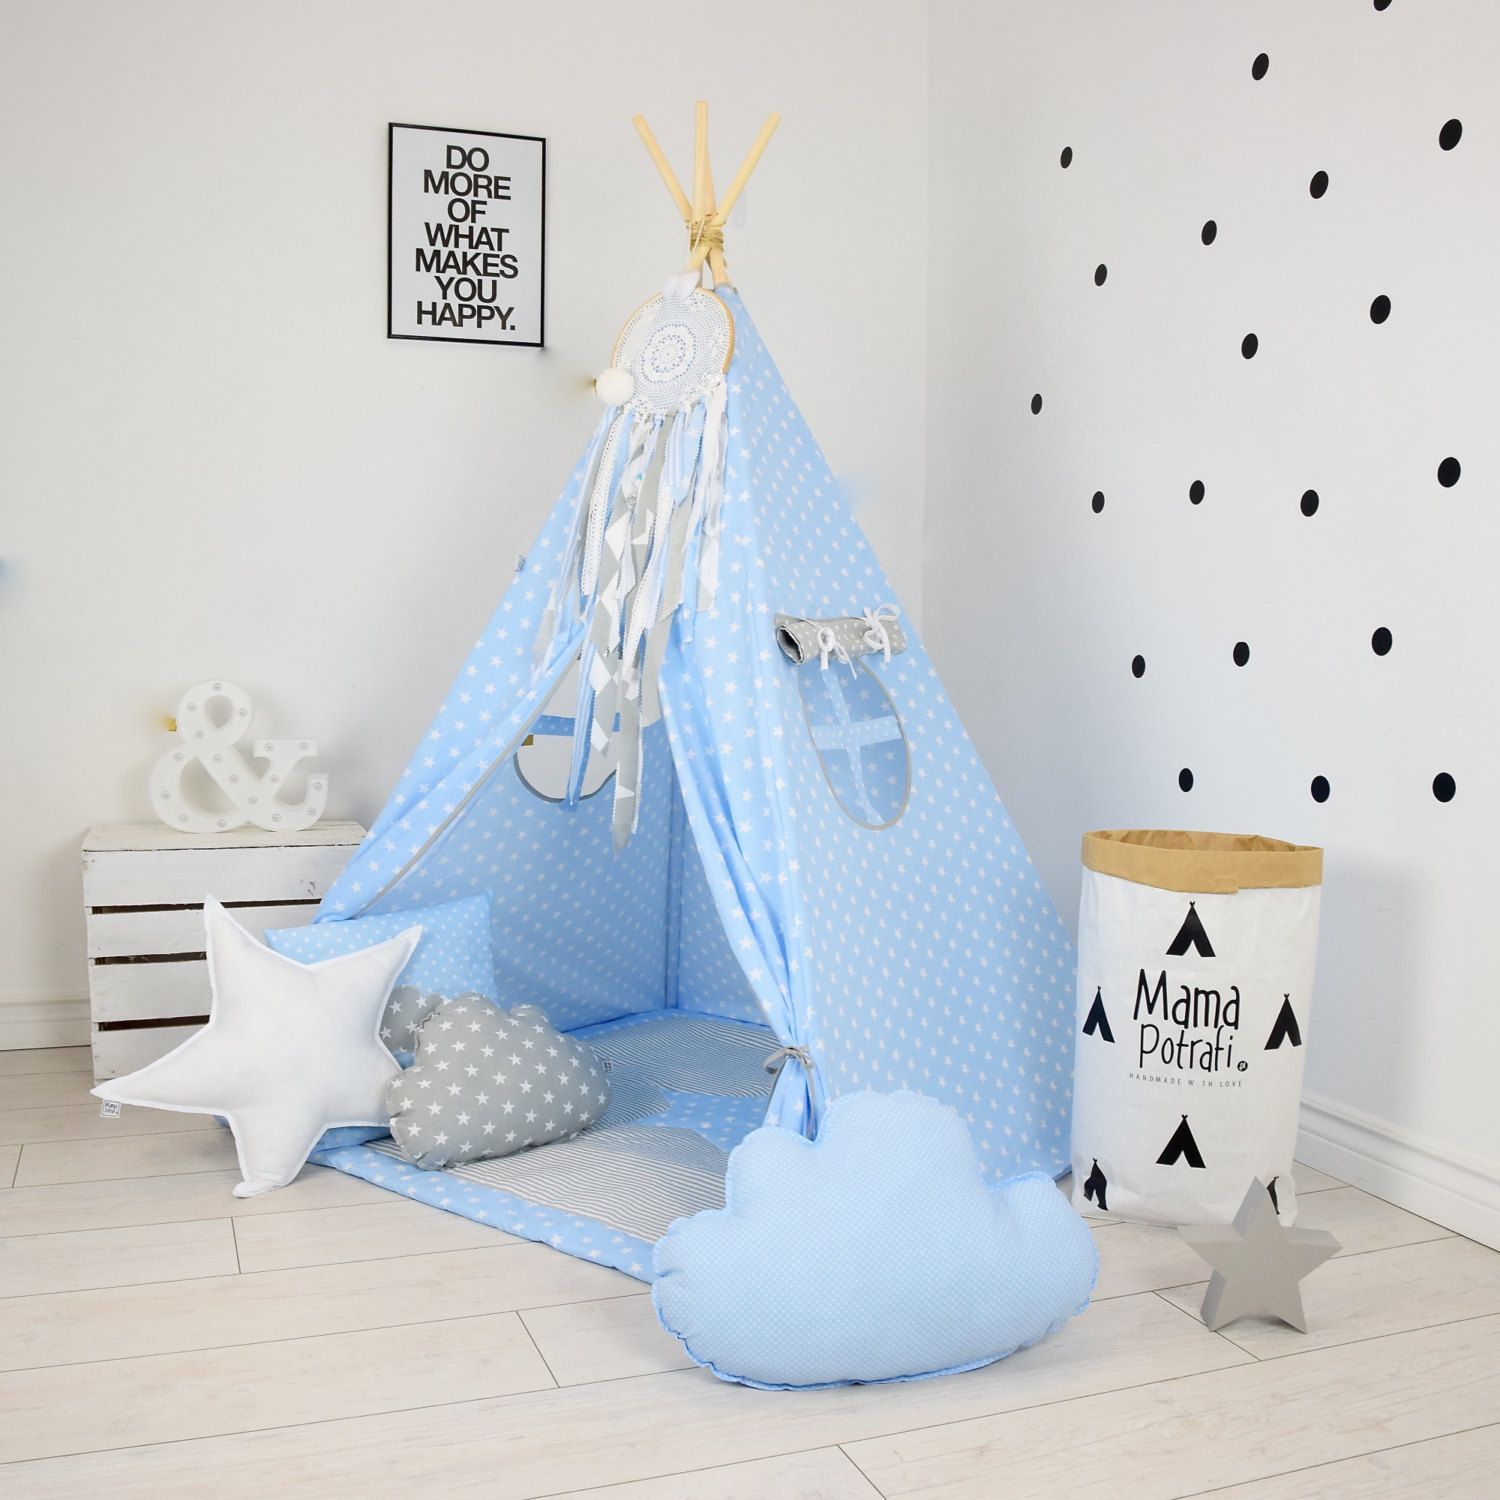 Teepee Tent For Kids Playhouse Boys Tent Teepee Tent Set Reading L& Children Wigwam Star Teepee Blue Tent Nursery Tent Play Mat & Teepee Tent For Kids Playhouse Boys Tent Teepee Tent Set ...